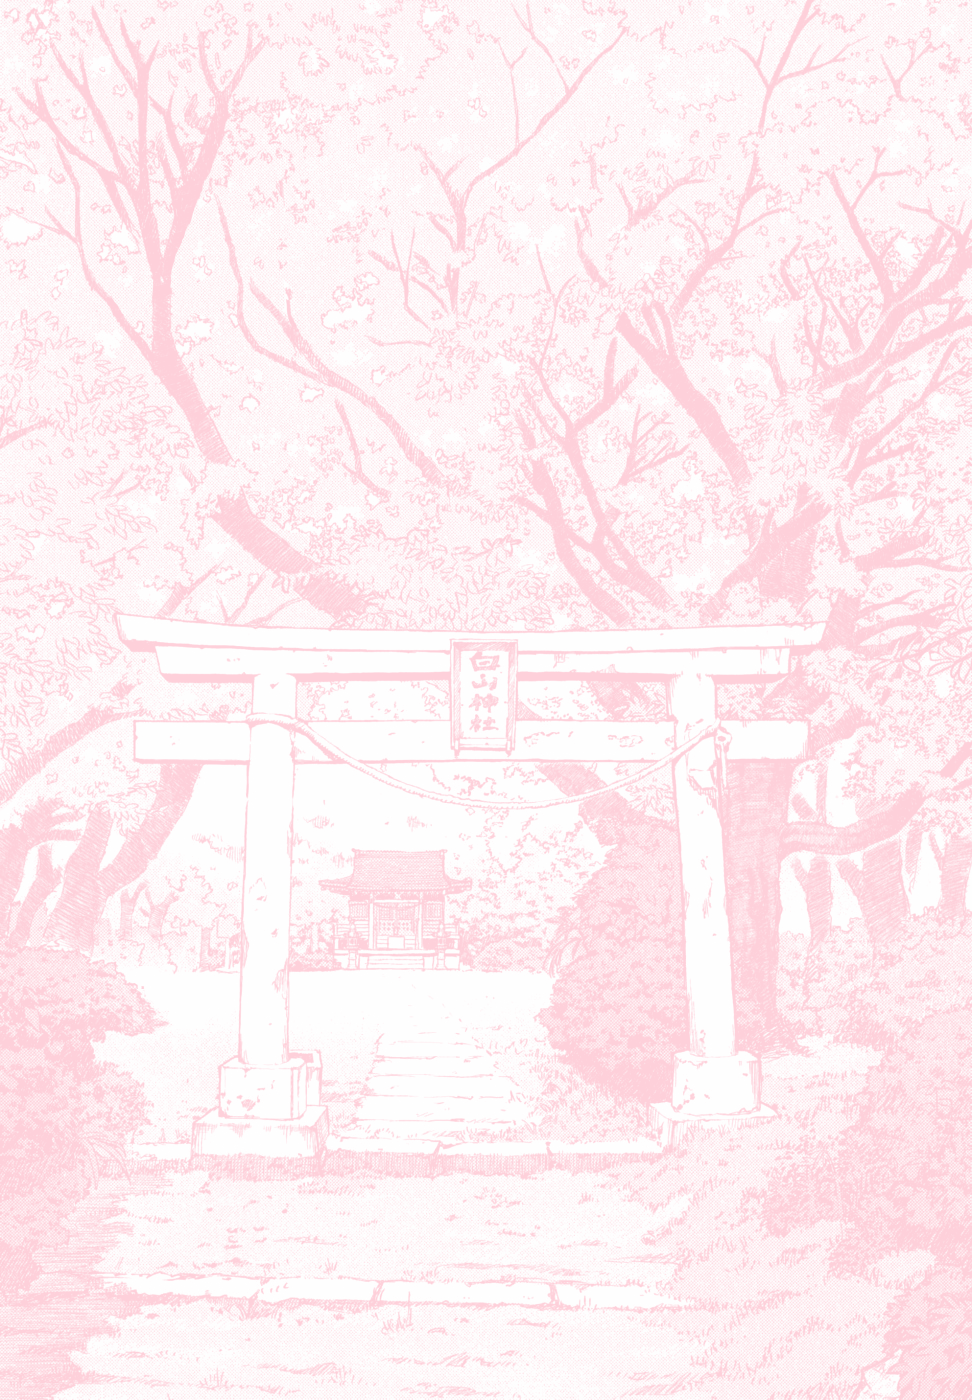 Aesthetic Pink Anime Wallpapers Top Free Aesthetic Pink Pin On Iphone Wallpapers Aesthetic Pink In 2020 Pink Wallpaper Anime Pastel Pink Aesthetic Anime Wallpaper